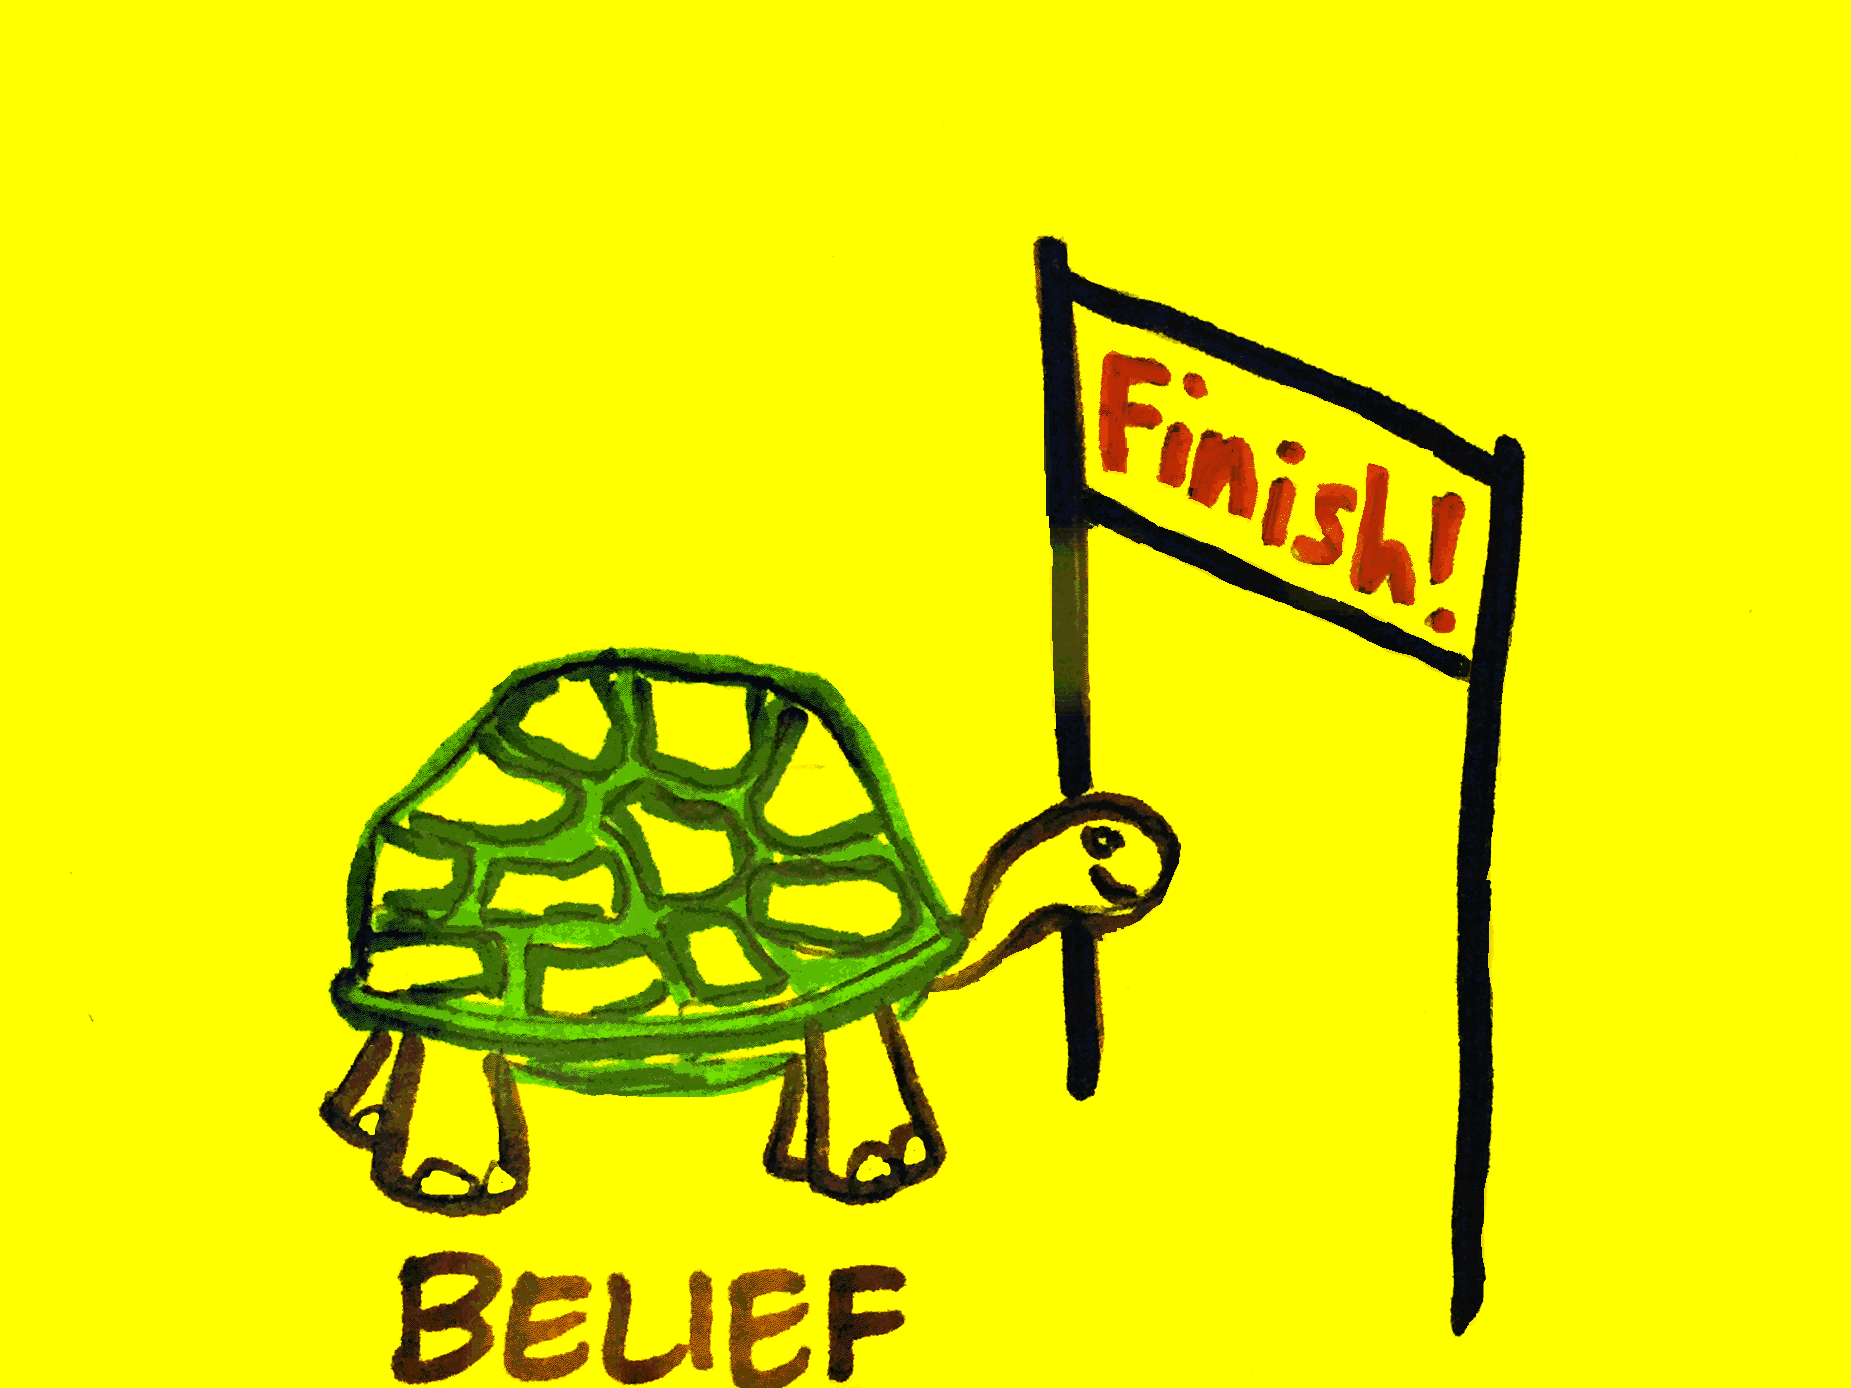 Belief StrengthsFinder Singapore Tortoise Persevere Finishing Line